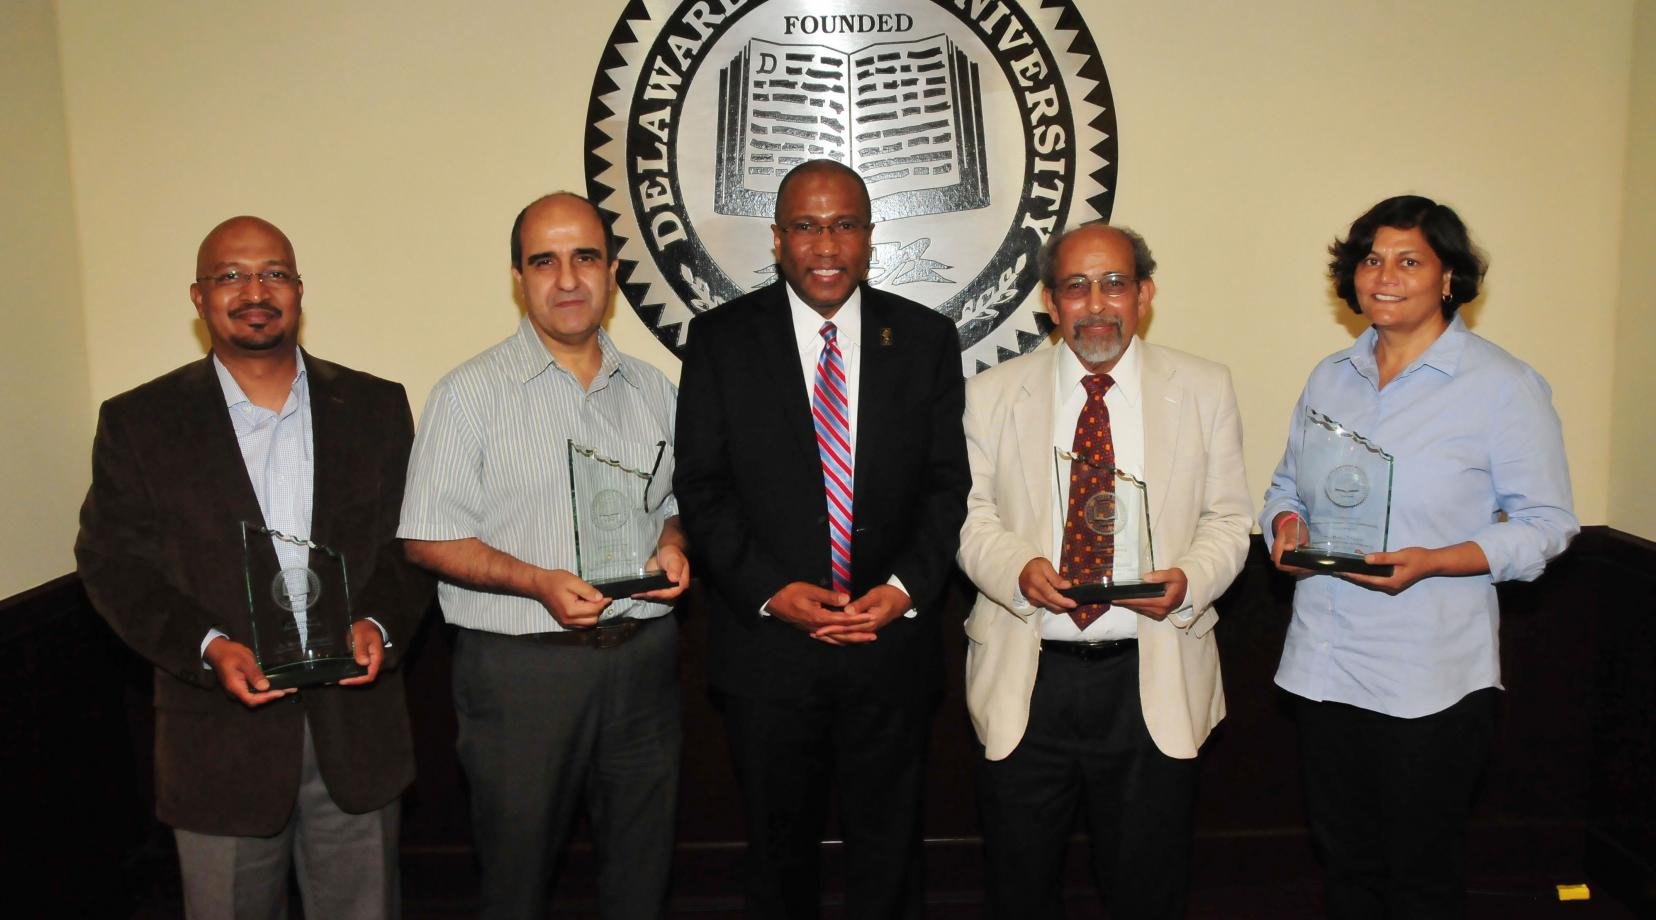 The  2017 DSU Faculty Excellence Awardees: (l-r) Dr. Murali Temburni (Teaching), Dr. Hacene Boukari (Service), DSU President Harry L. Williams, Dr. Mazin Shahin (Advising), and Dr. Renu Tripathi (Research).